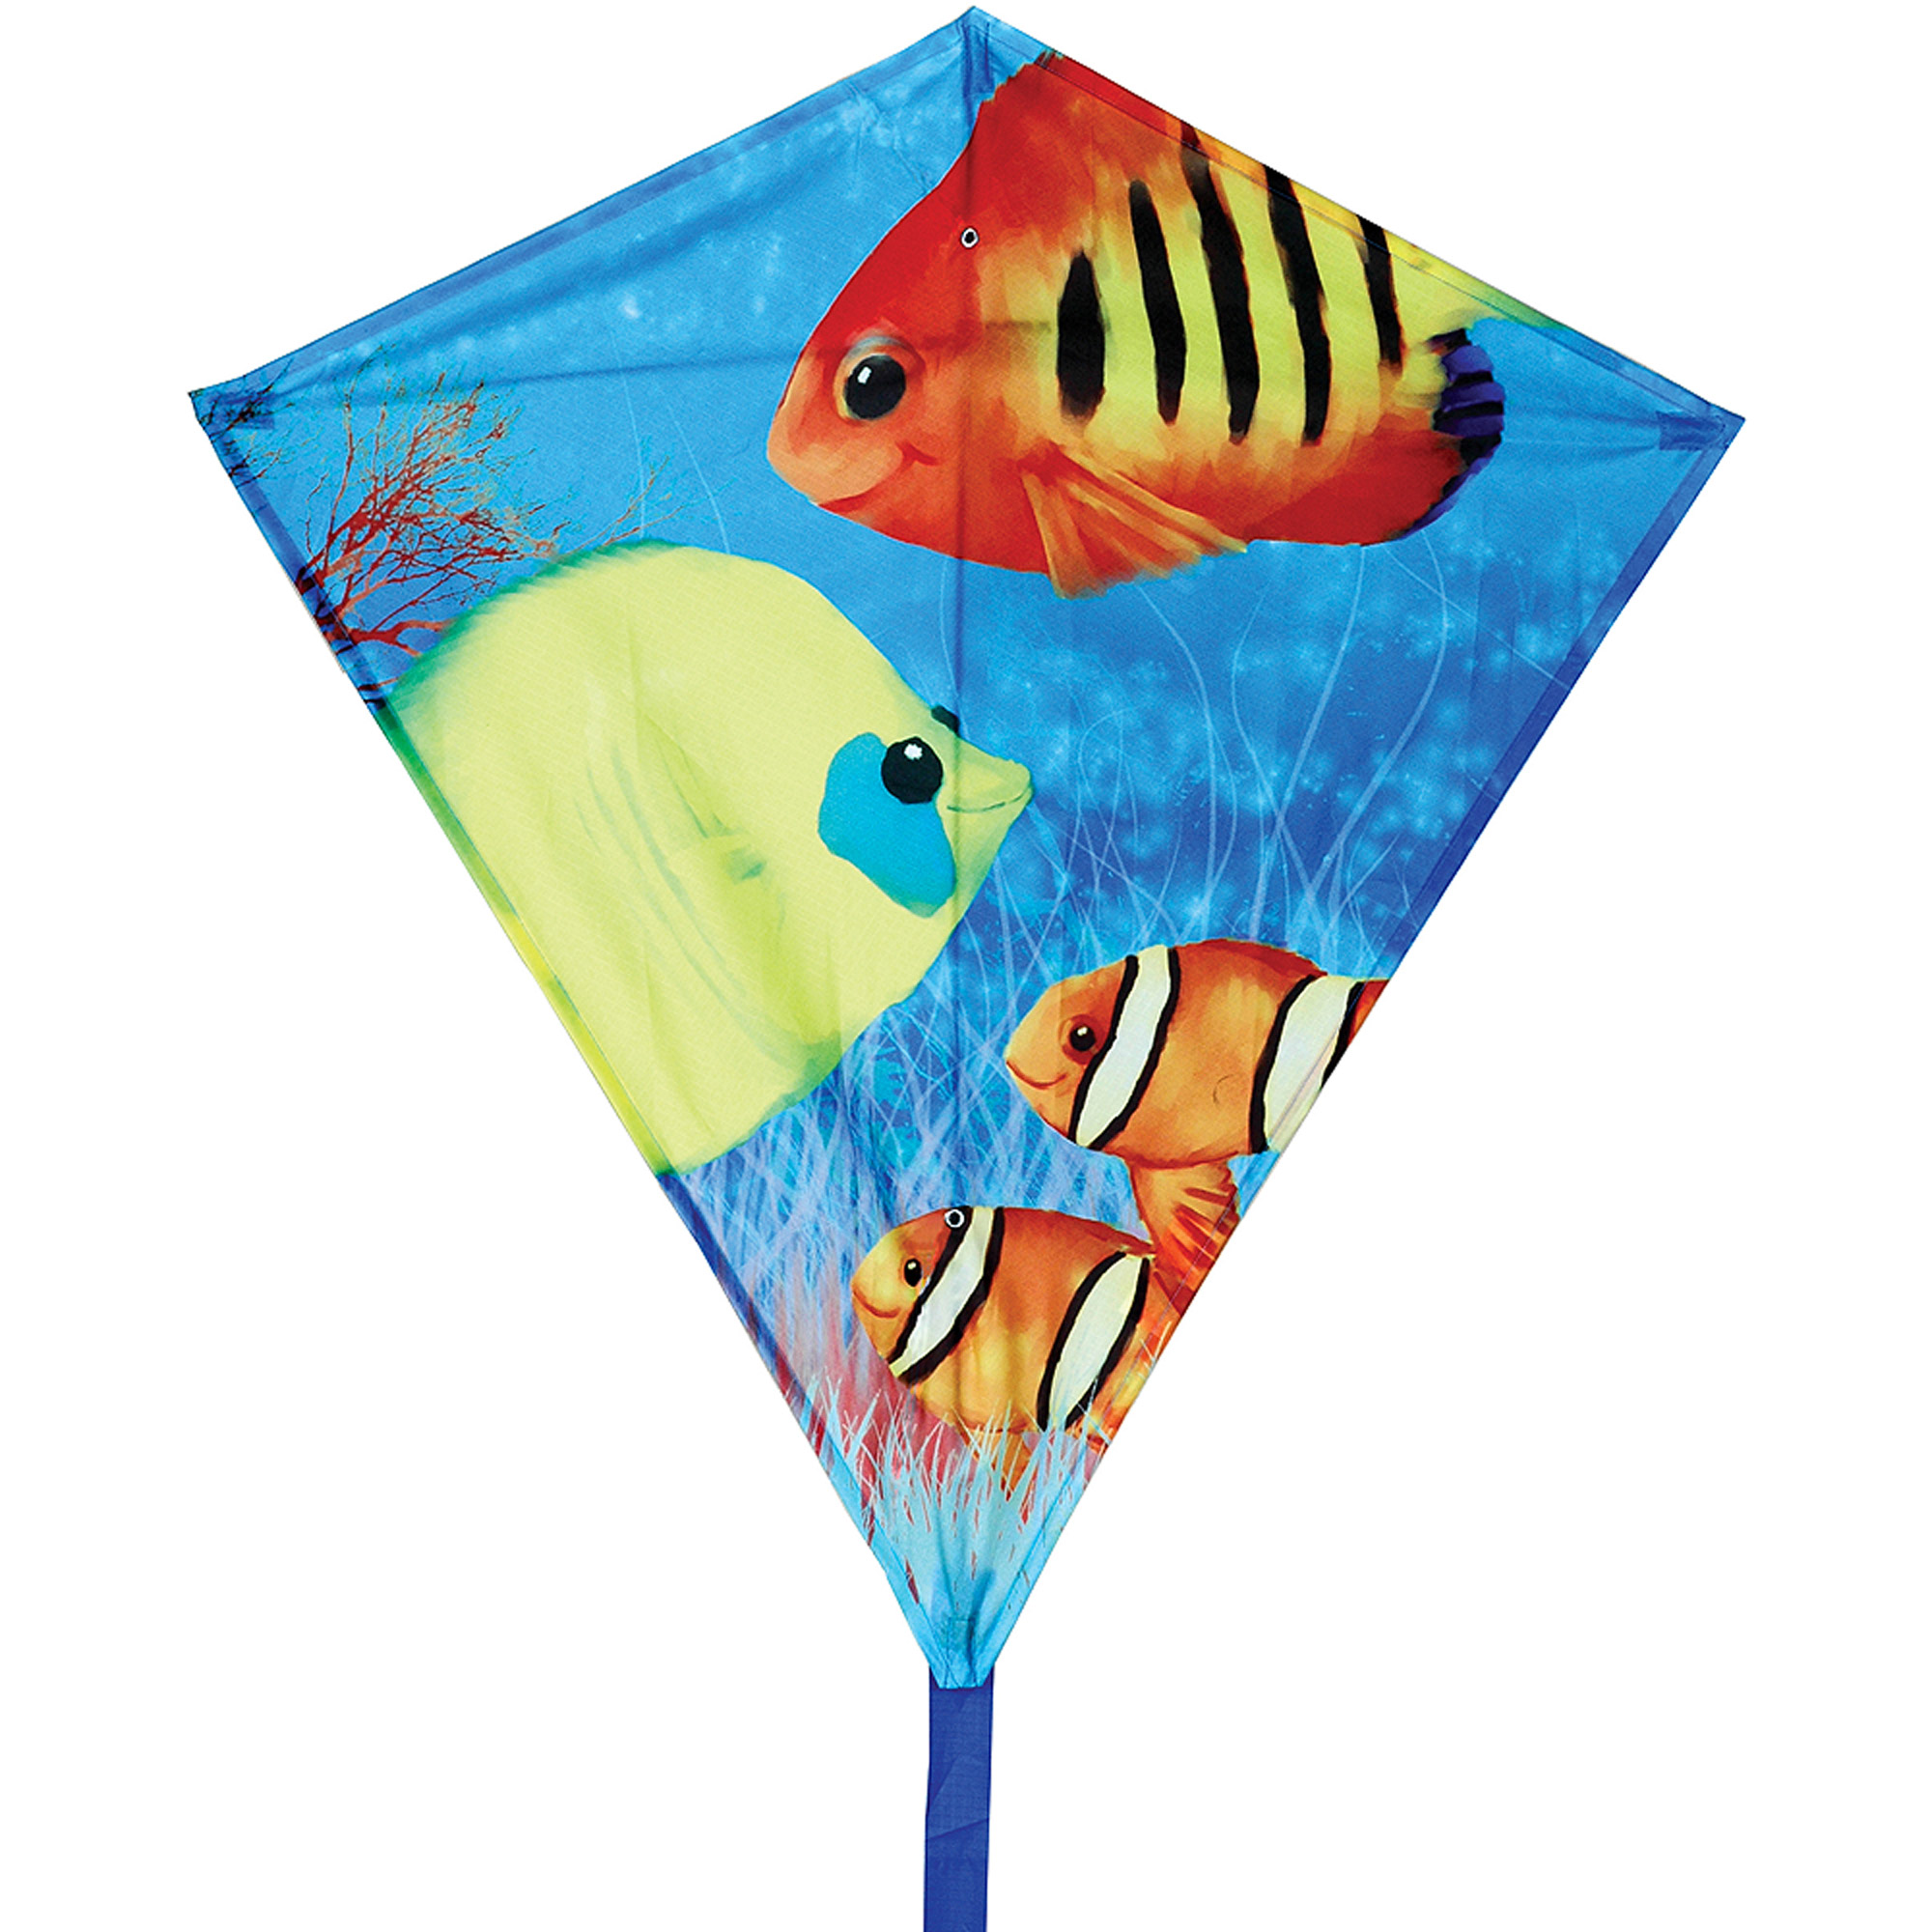 "Premier Designs 30"" Diamond Kite, Fishy Fishes"